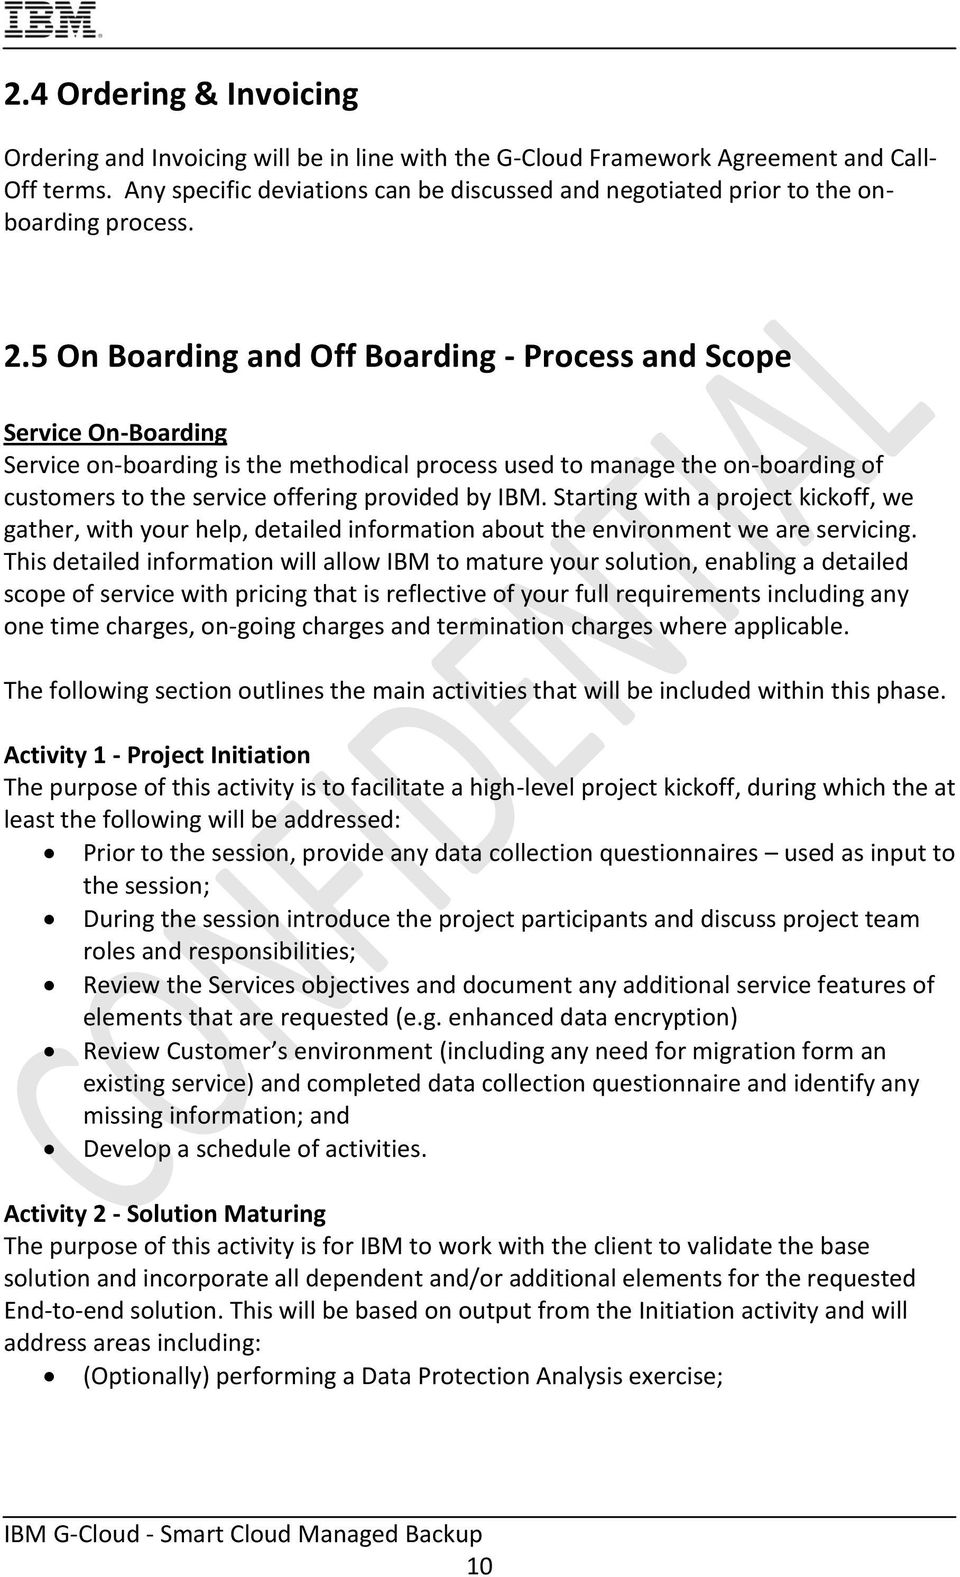 5 On Boarding and Off Boarding - Process and Scope Service On-Boarding Service on-boarding is the methodical process used to manage the on-boarding of customers to the service offering provided by